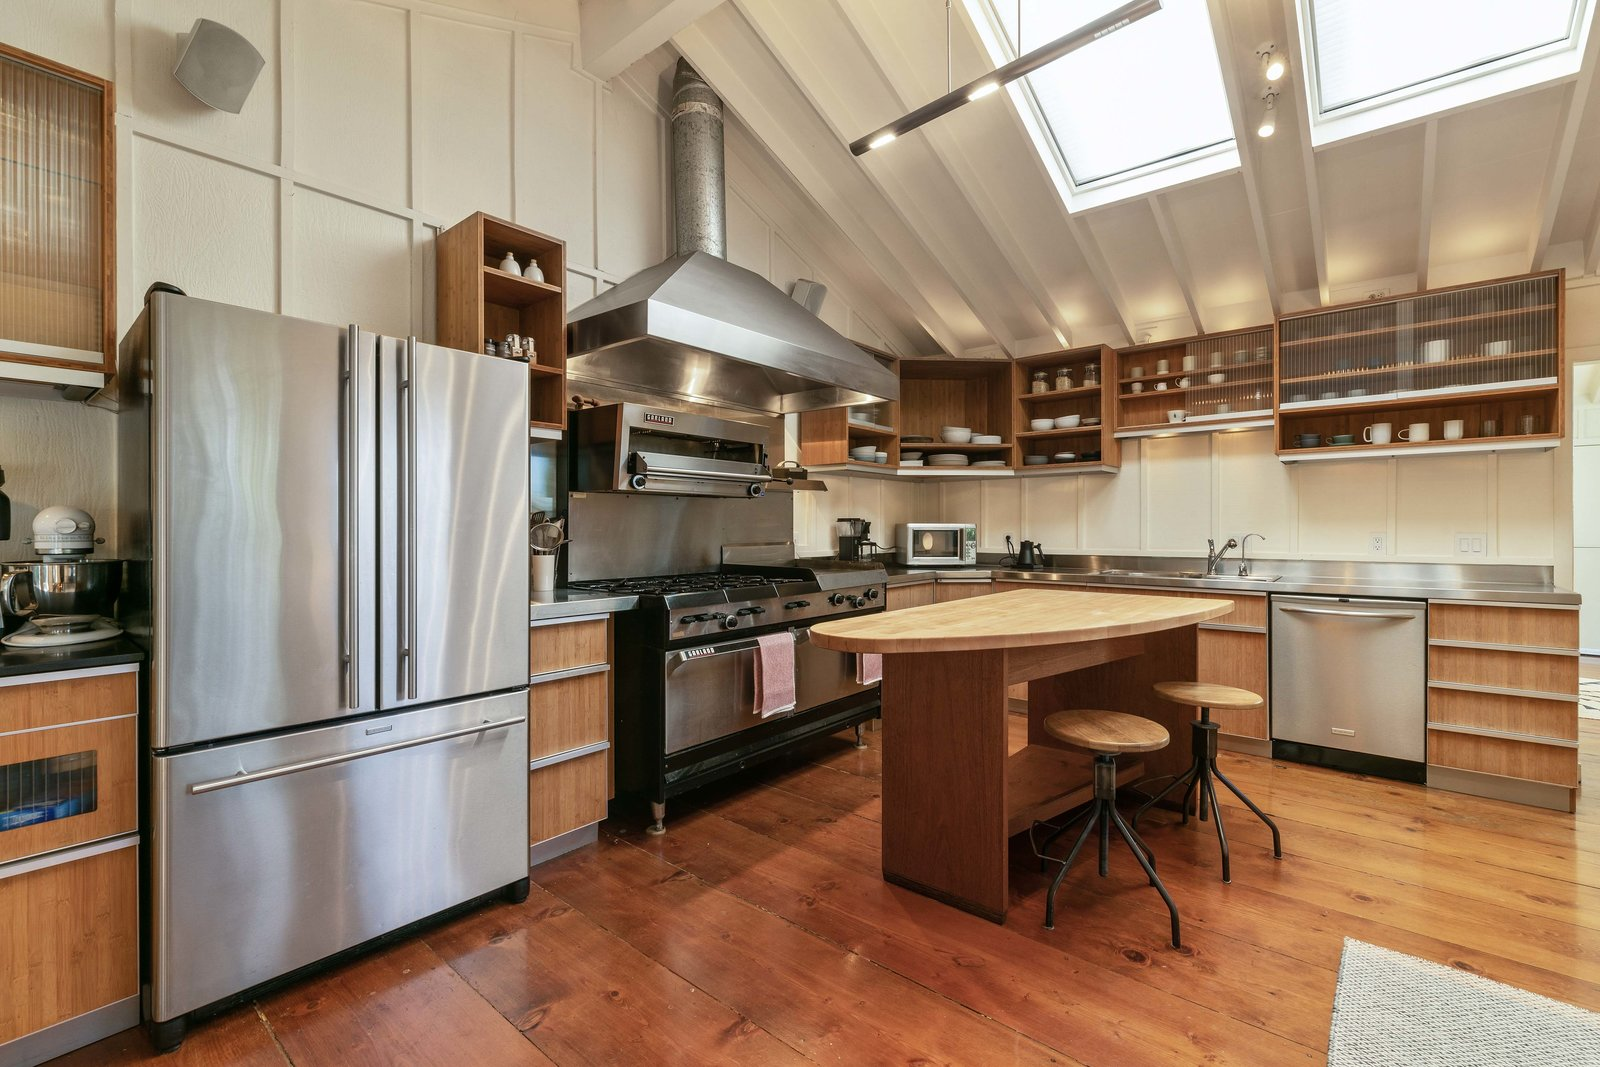 The commercial-grade kitchen features a Garland six-burner stove with built-in griddle, as well as a salamander broiler hanging overhead  Other features include custom bamboo cabinetry and stainless steel counter tops around the perimeter.  Photo 5 of 13 in An Idyllic Cottage With a Garden Studio Seeks $1.8M in San Francisco